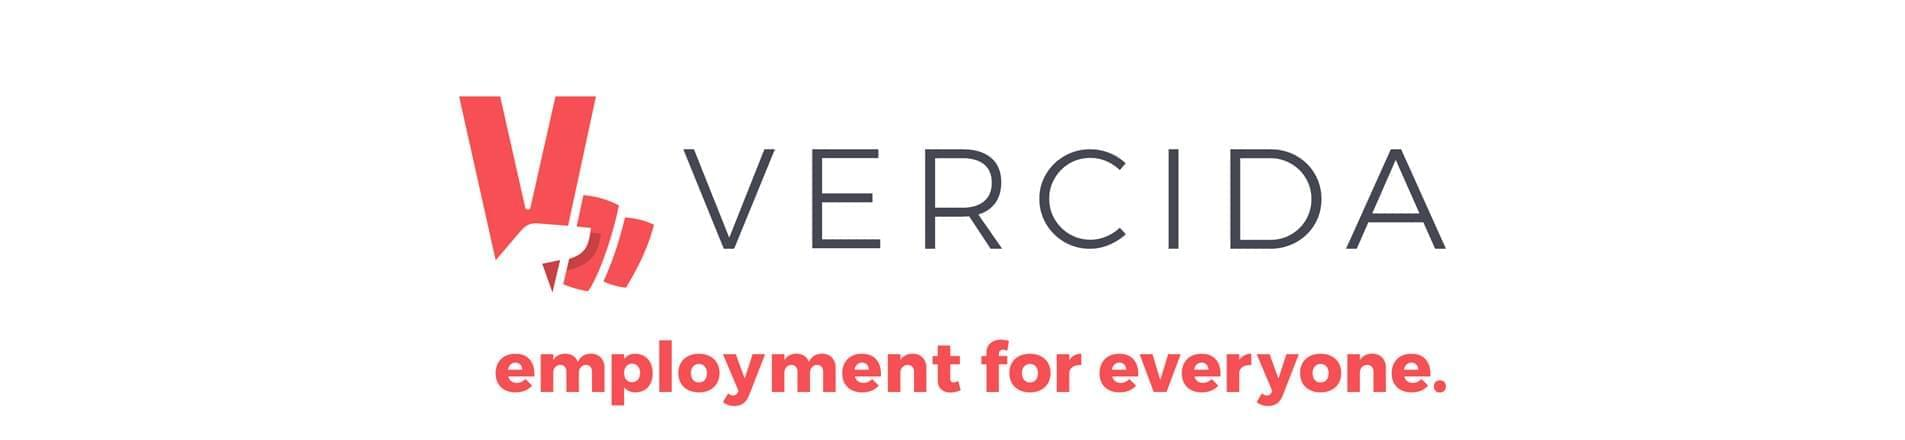 VERCIDA Logo with the text 'employment for everyone'